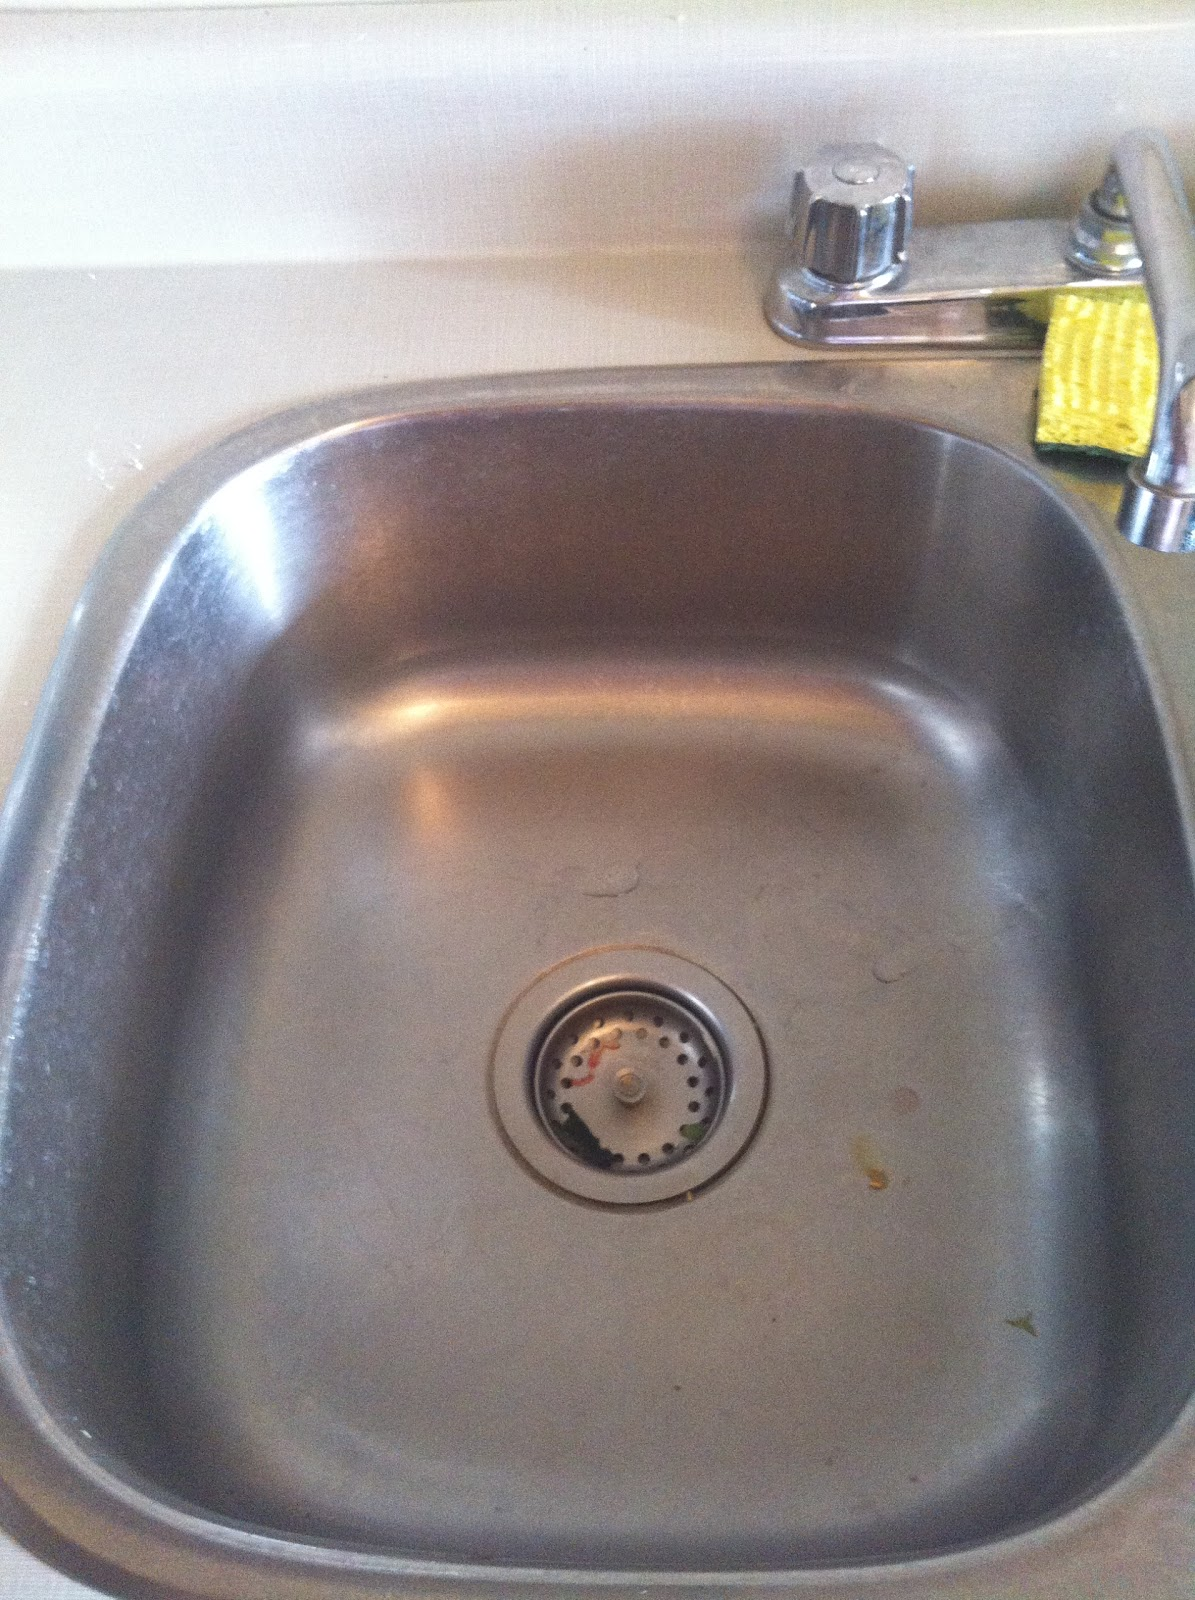 Leslie39s Tips For Life How To Clean Sink Stainscoffee